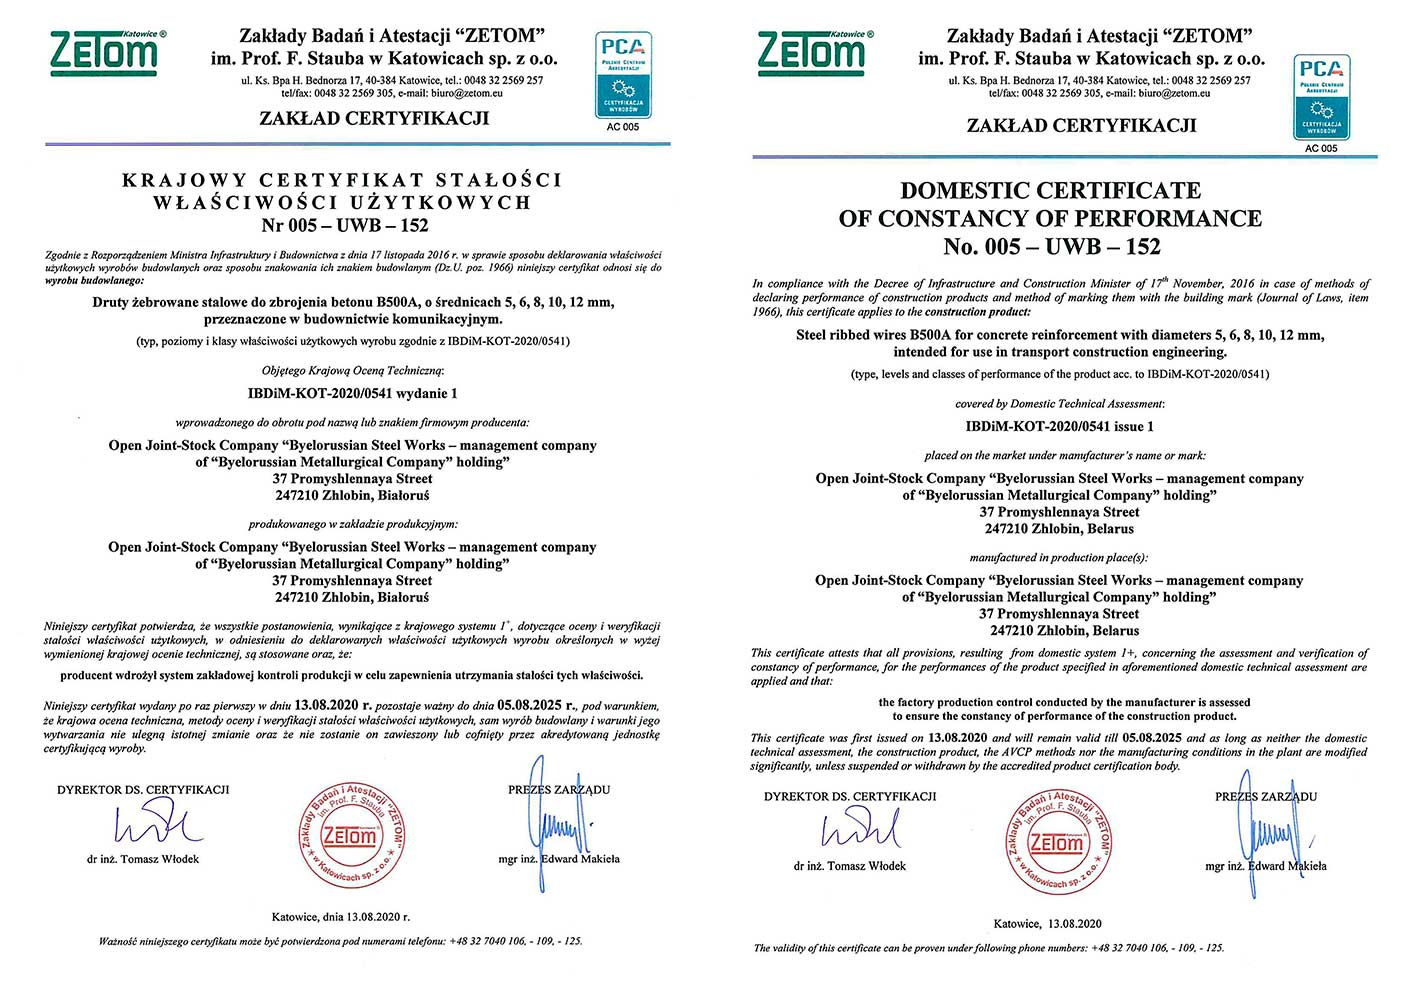 Certificate of conformity № 005-UWD-152 (Zetom, Poland) to produce cold-deformed rebar В500А with diameters 5, 6, 8, 10, 12 mm, intended for use in transport construction engineering